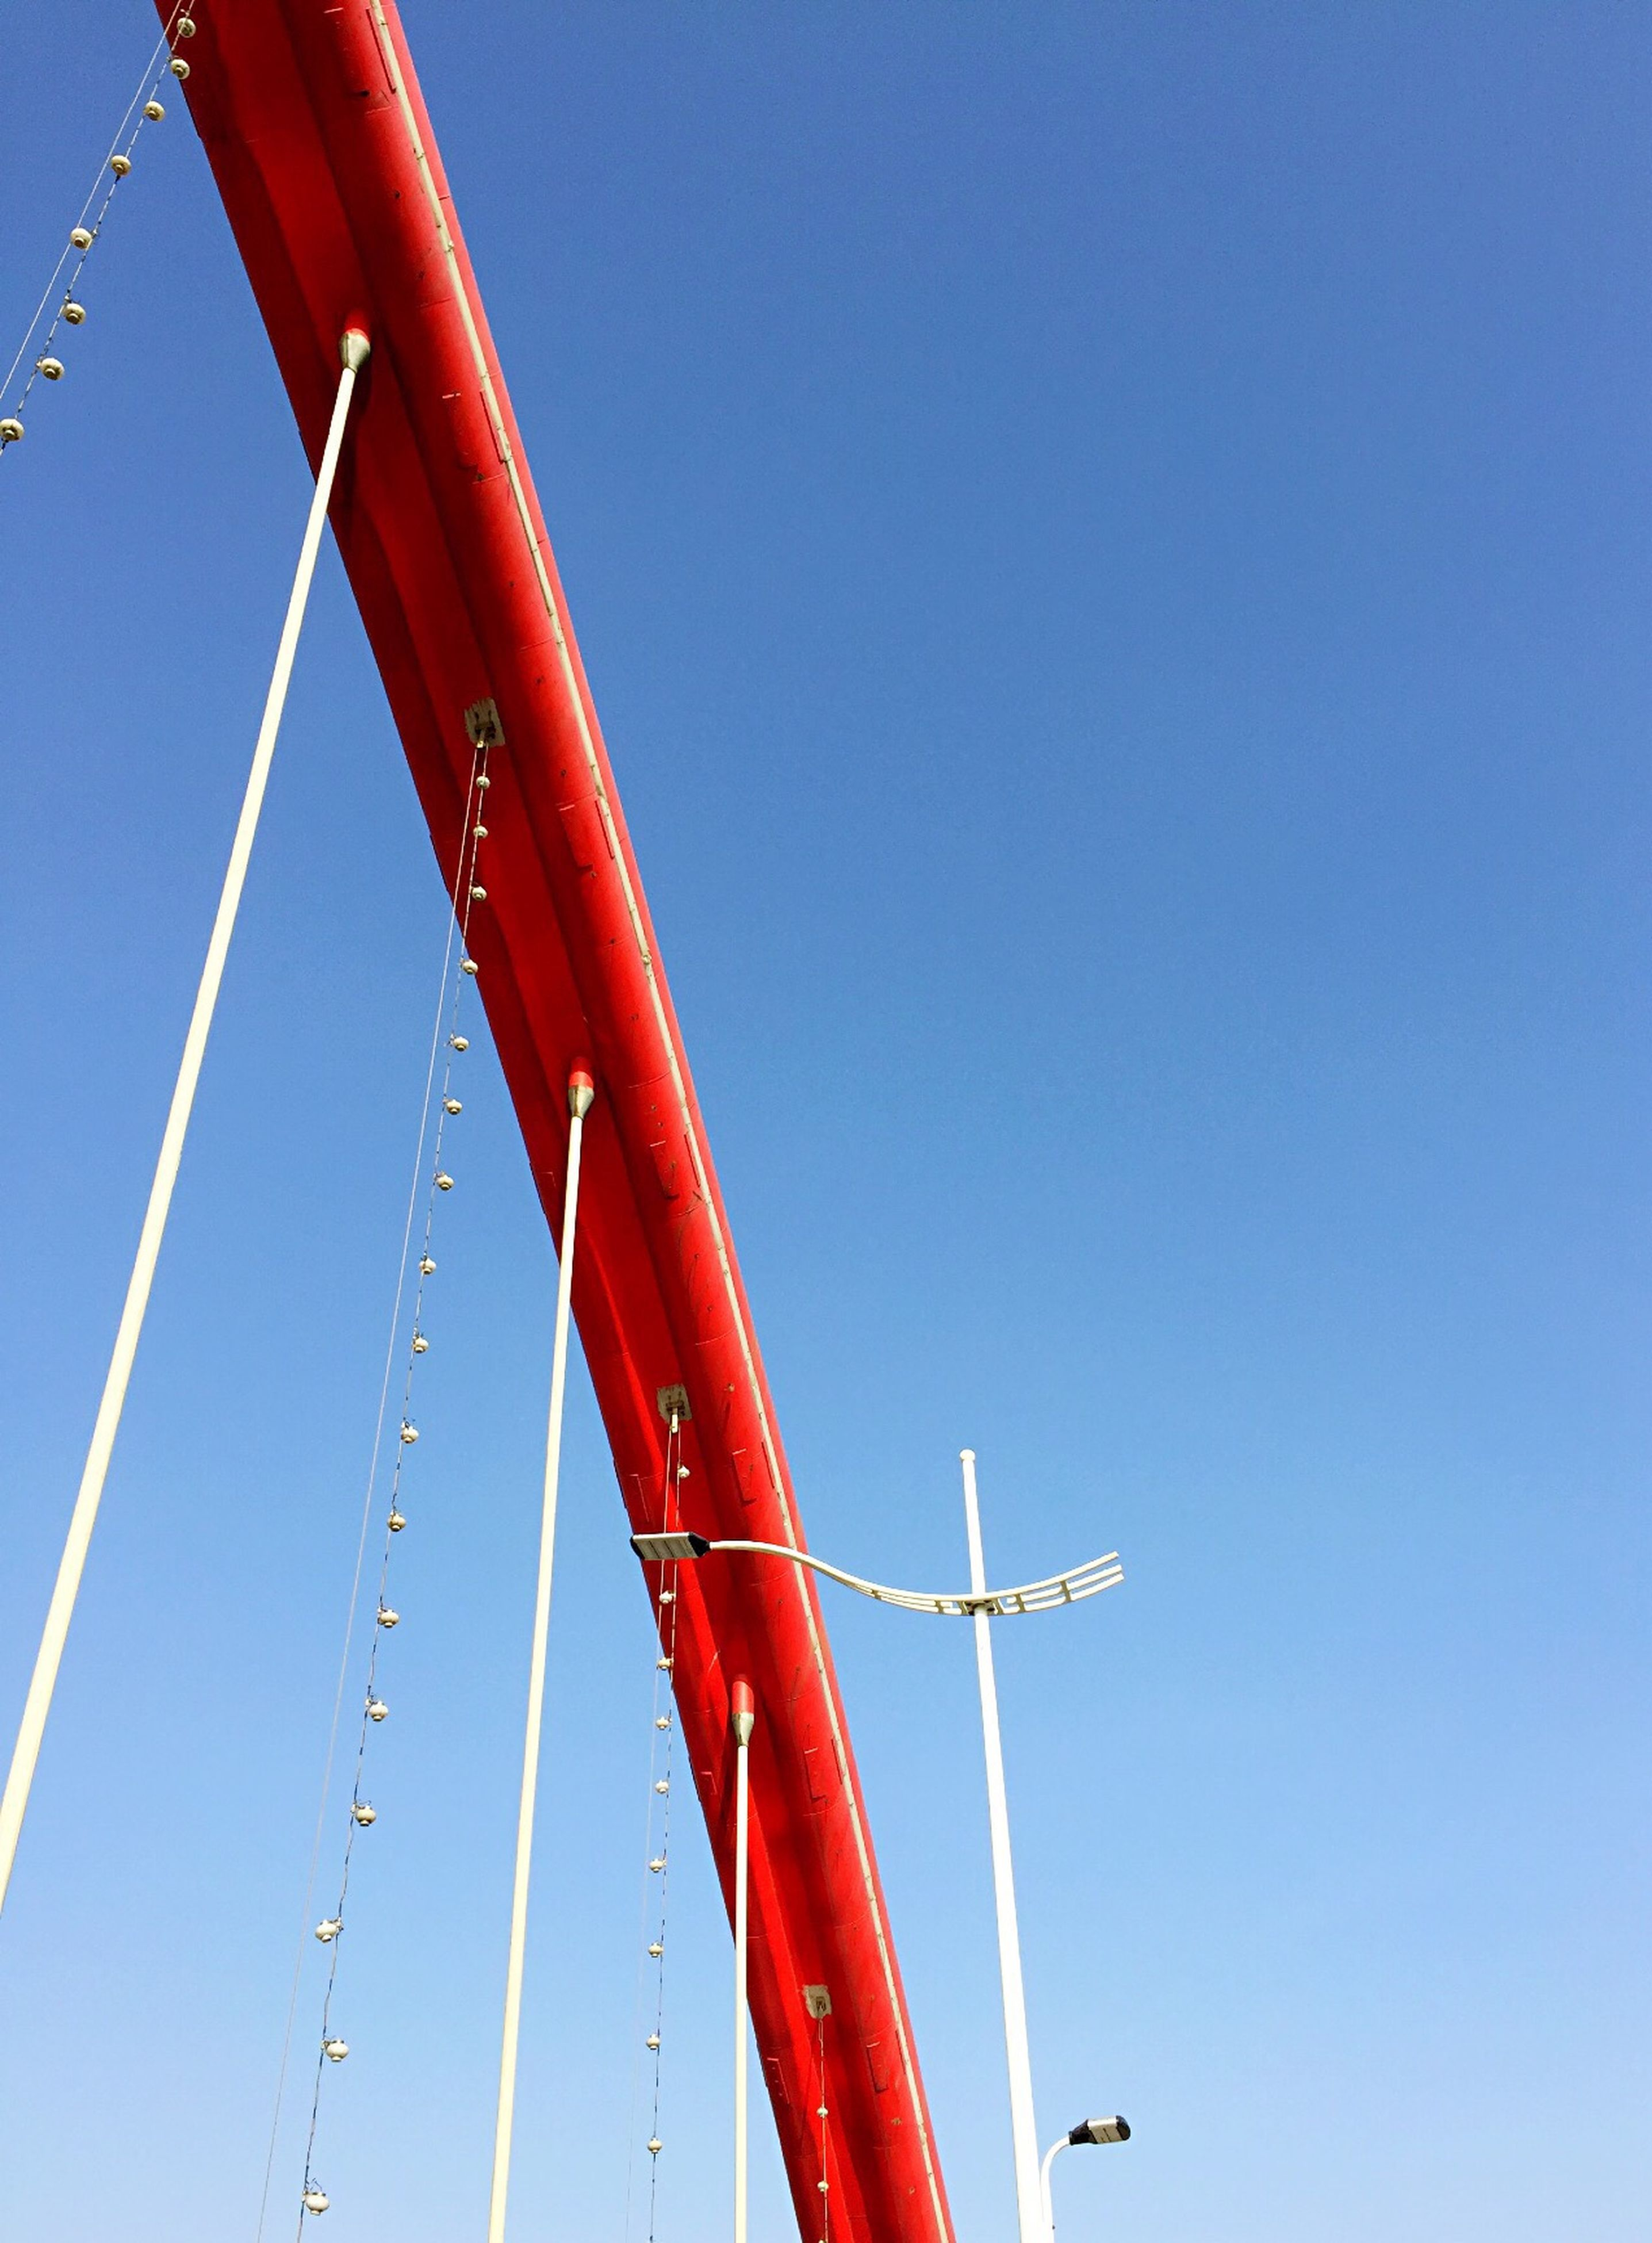 clear sky, low angle view, red, copy space, blue, transportation, connection, outdoors, no people, day, part of, cable, high section, flag, pole, identity, built structure, mode of transport, sky, national flag